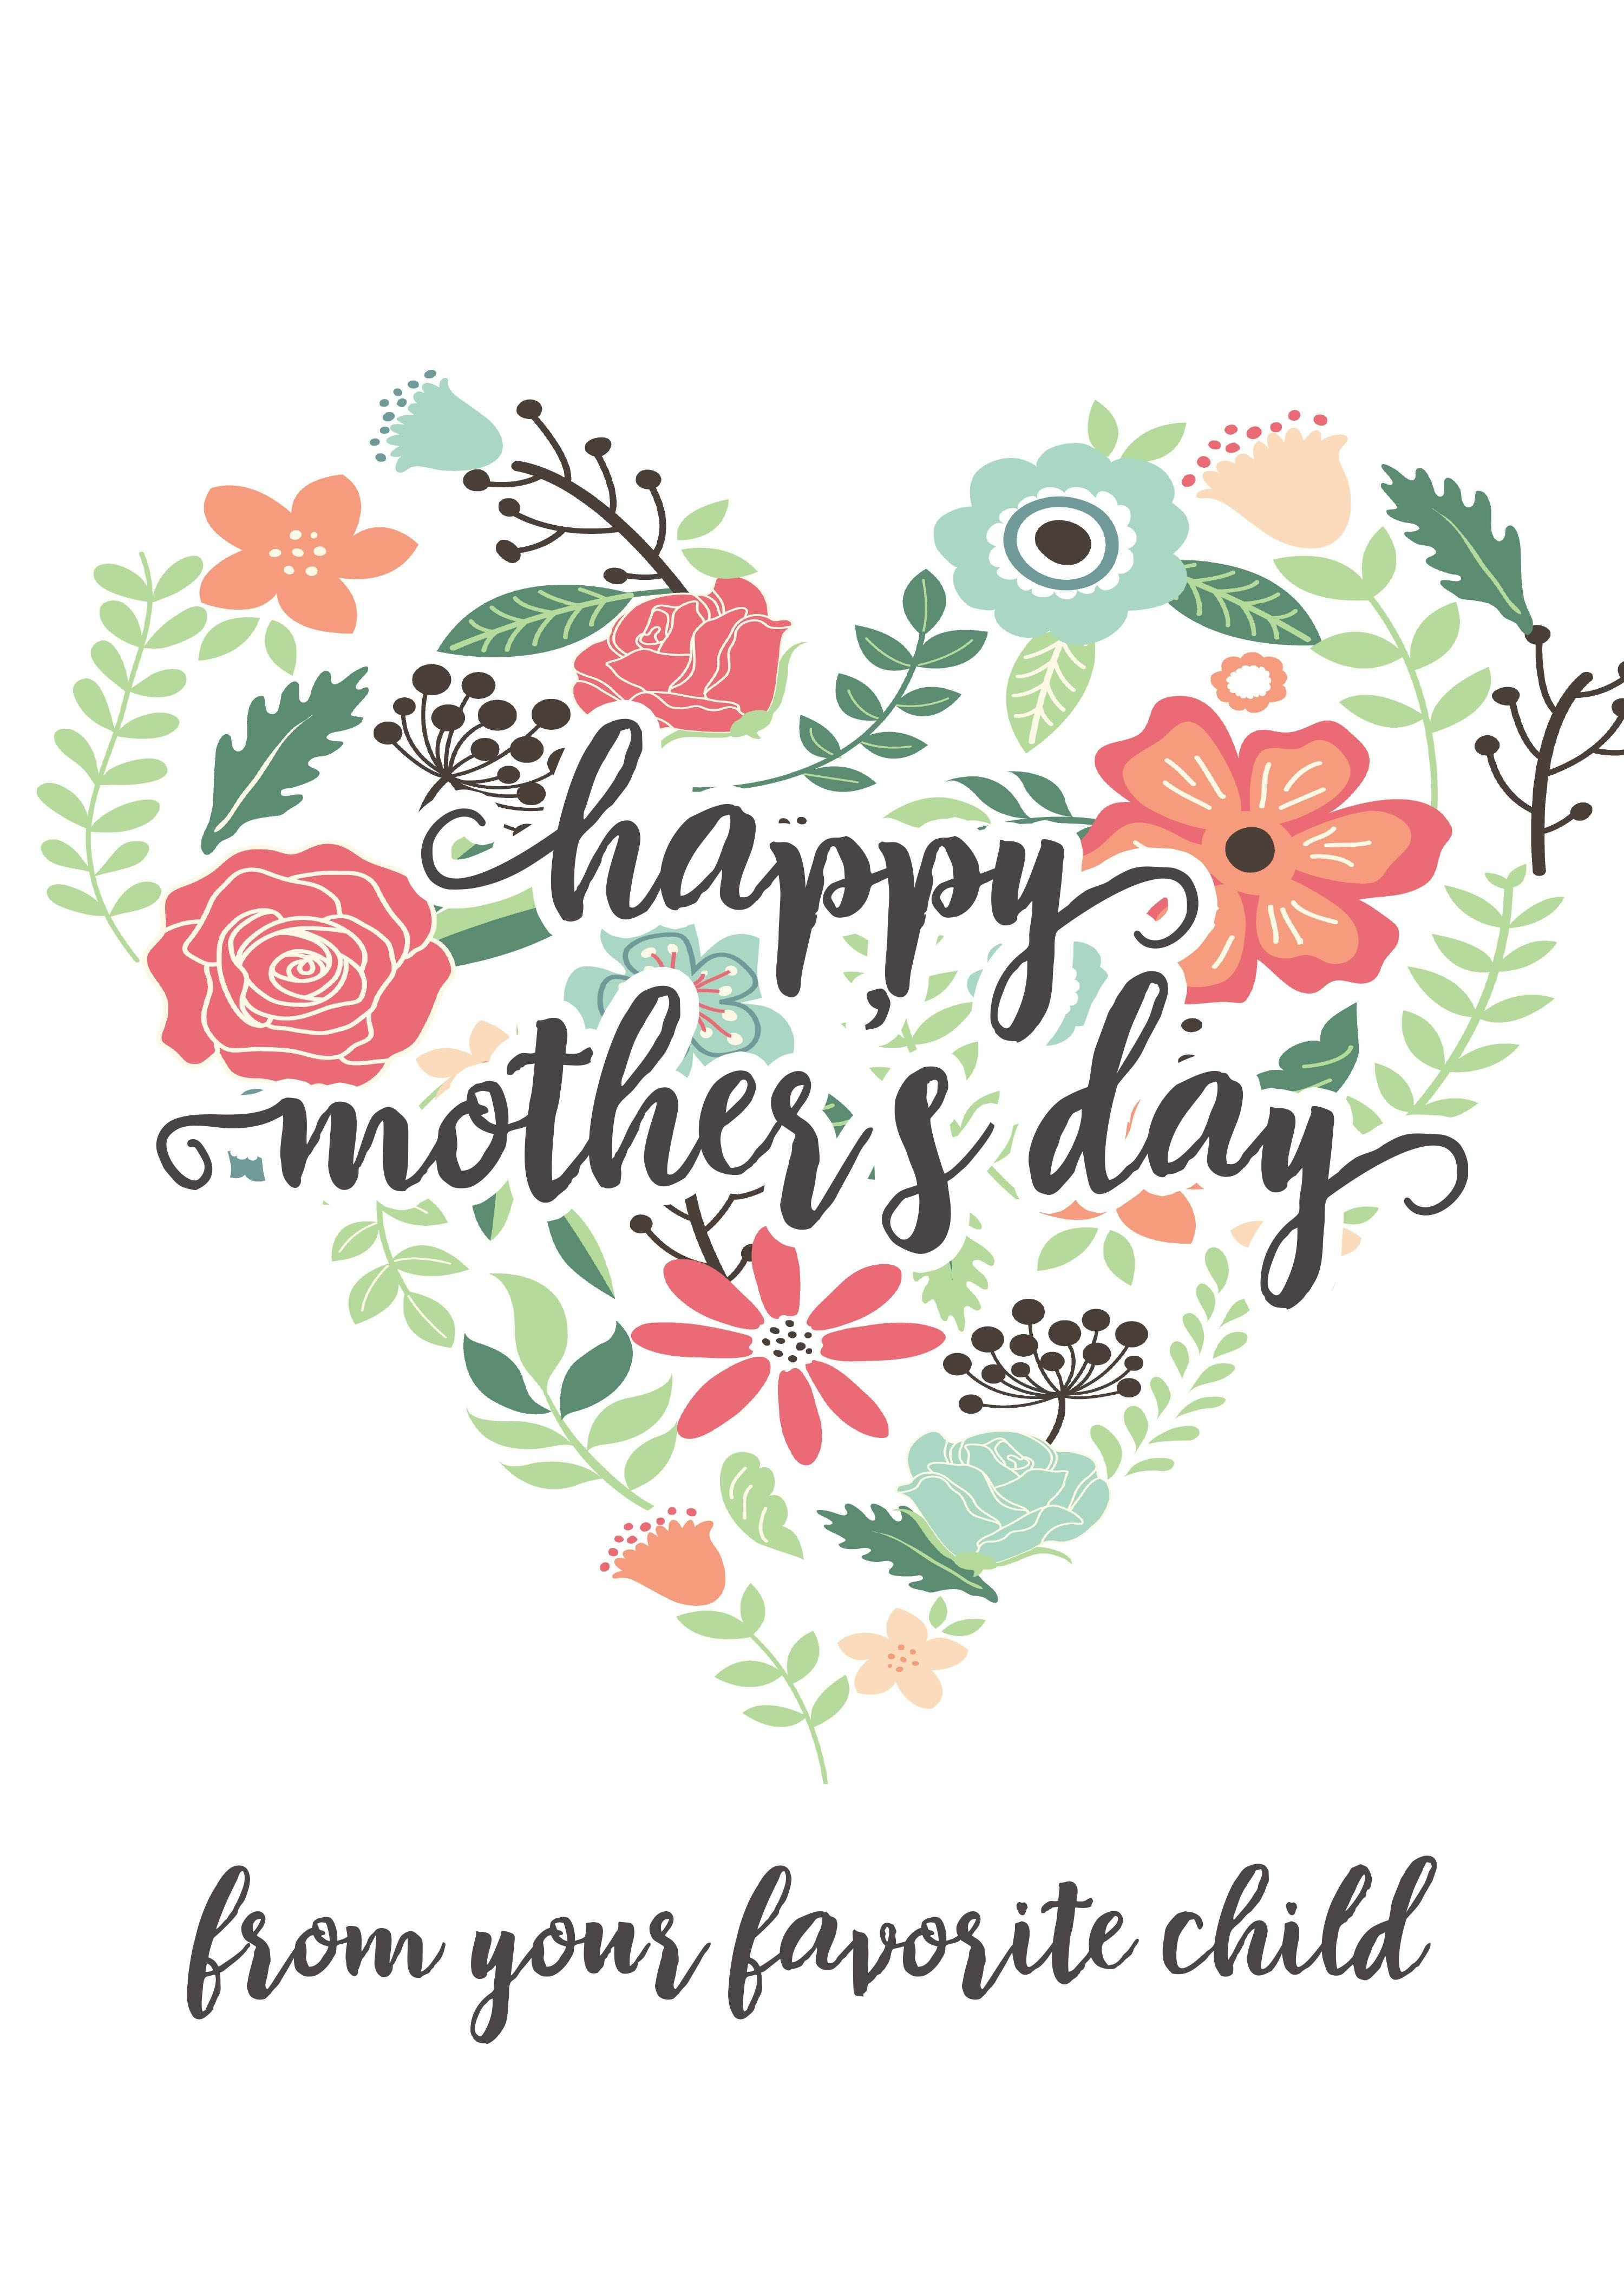 Happy Mothers Day Messages Free Printable Mothers Day Cards - Free Printable Mothers Day Cards